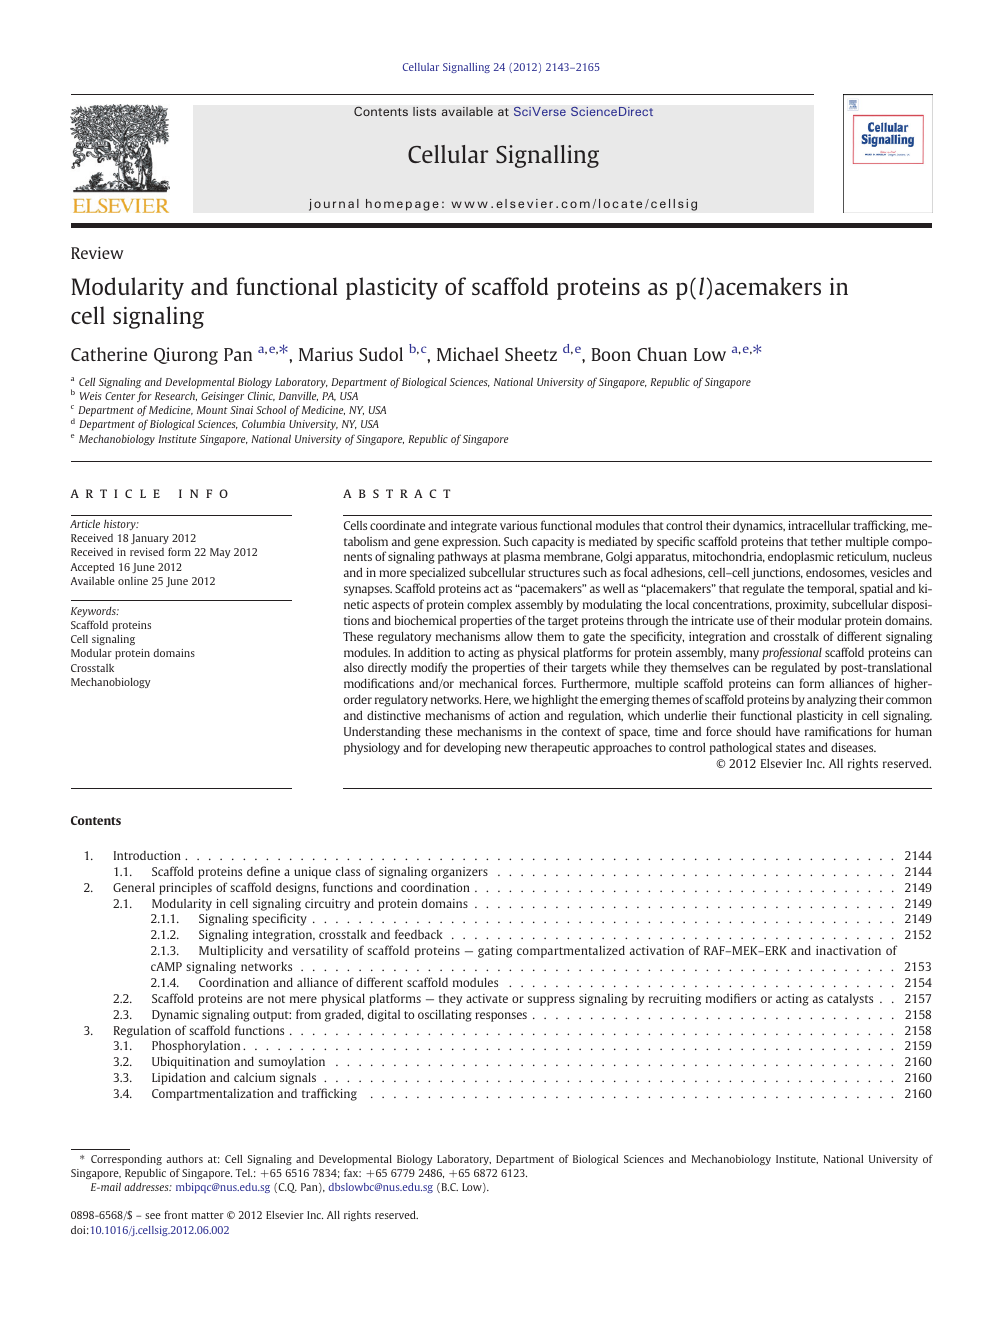 Modularity and functional plasticity of scaffold proteins as